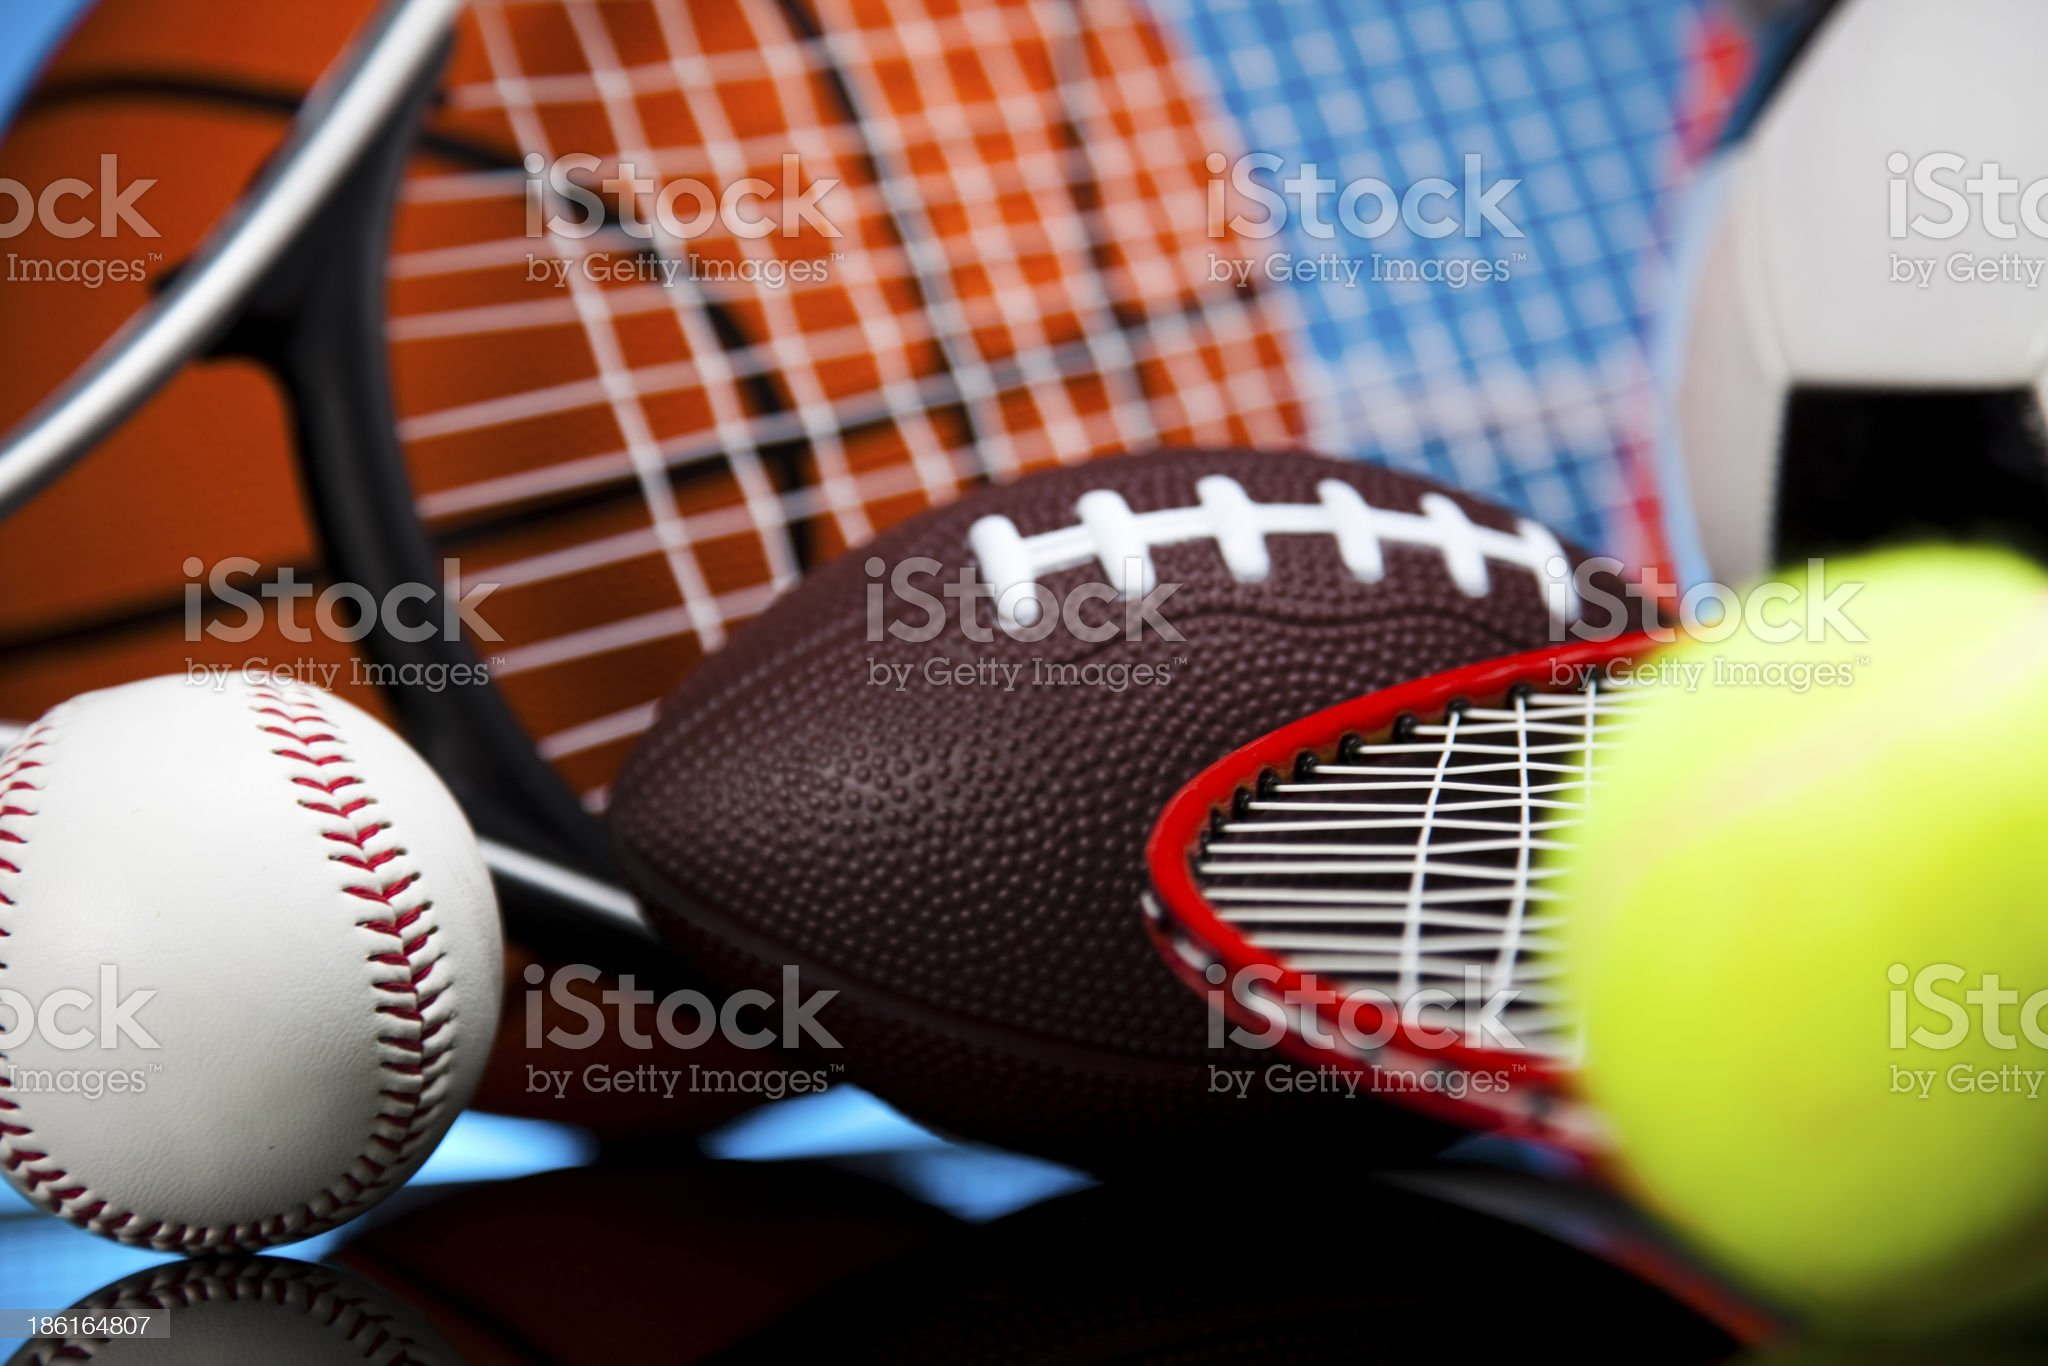 Sport closeup detail royalty-free stock photo